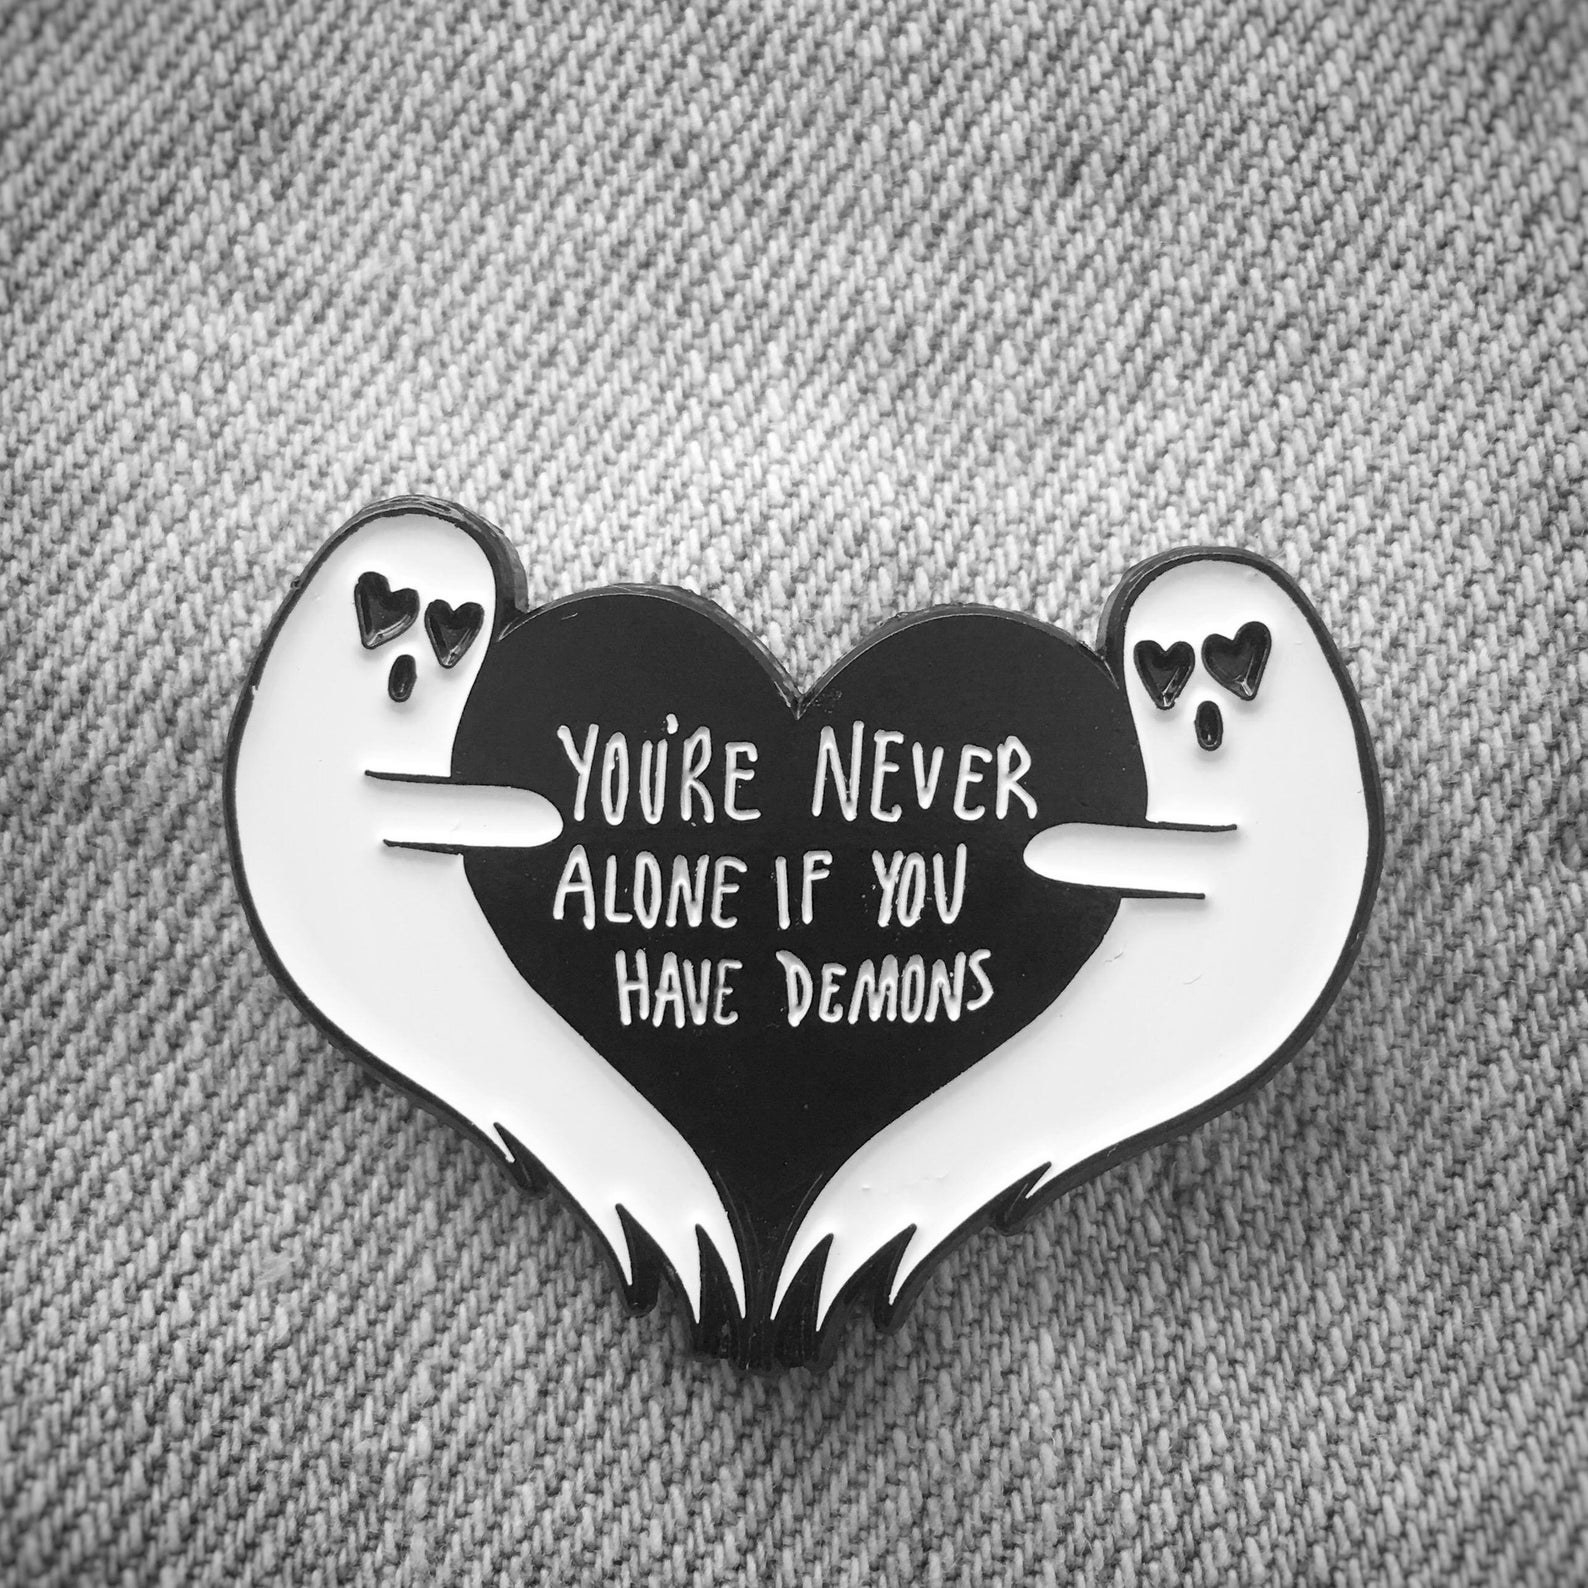 the pin with two ghosts and a black heart in between that says you're never alone if you have demons